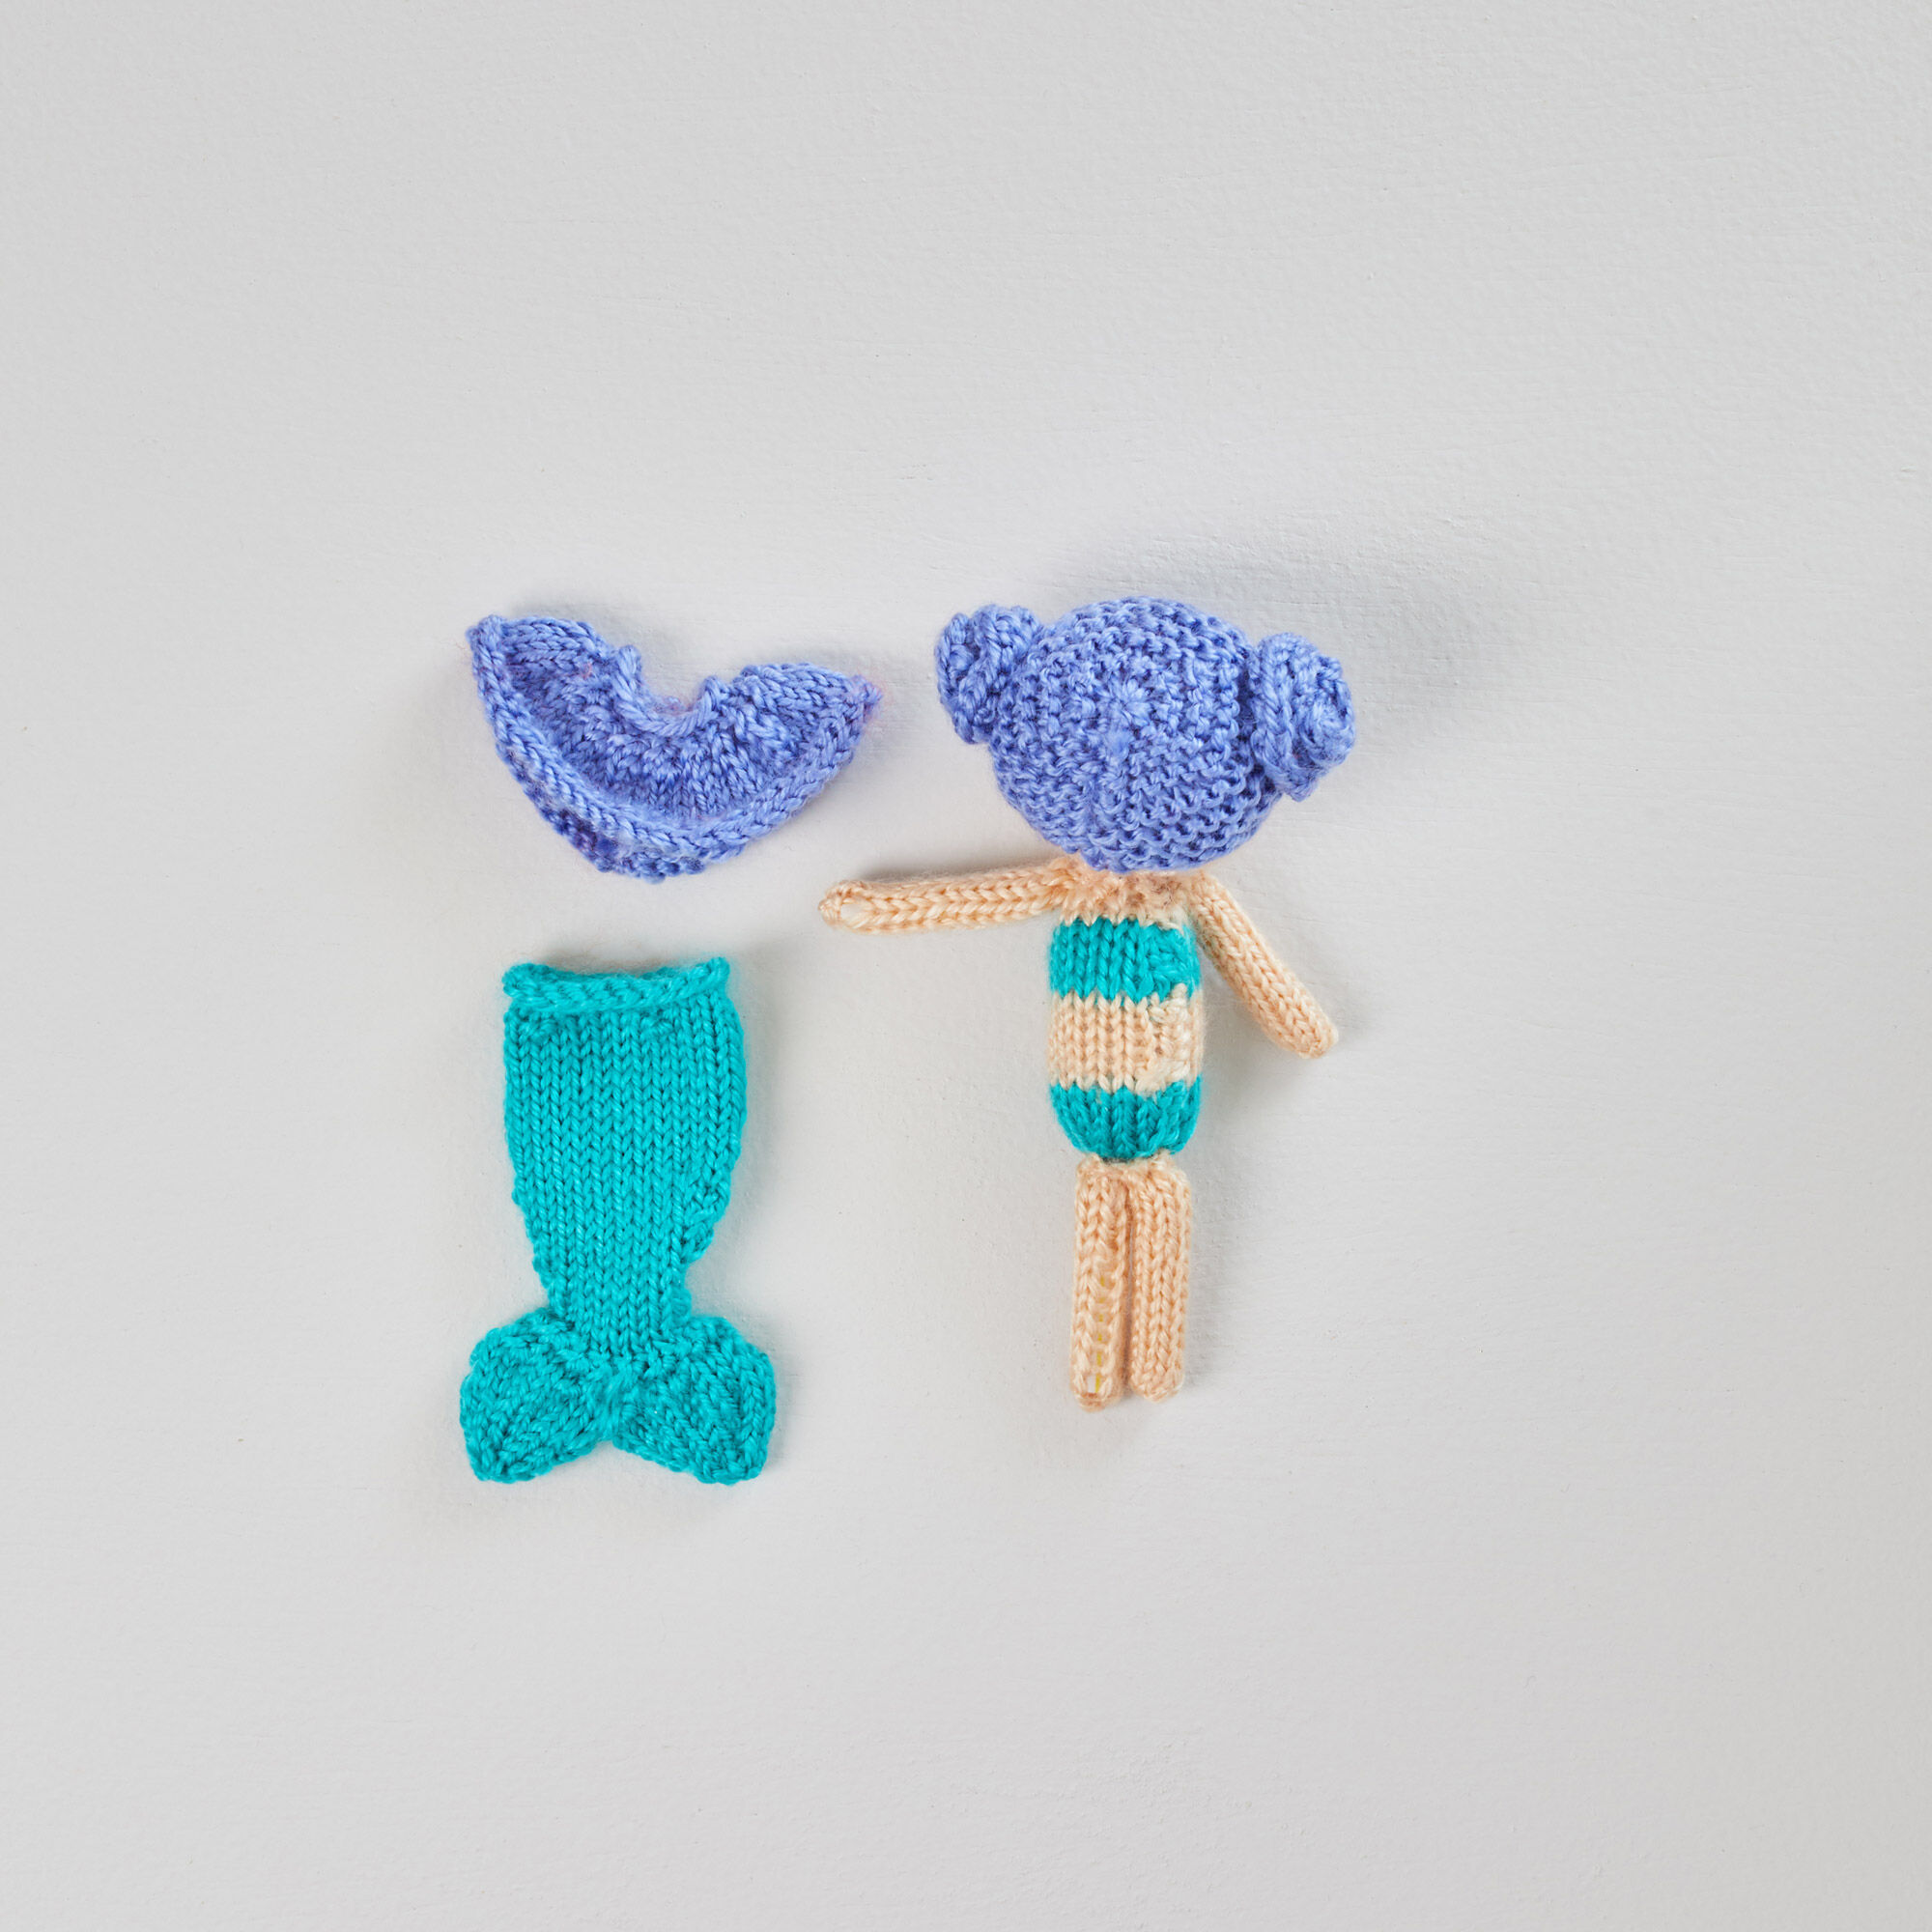 18 Free Crochet Mermaid Tail Patterns | Guide Patterns | 2000x2000